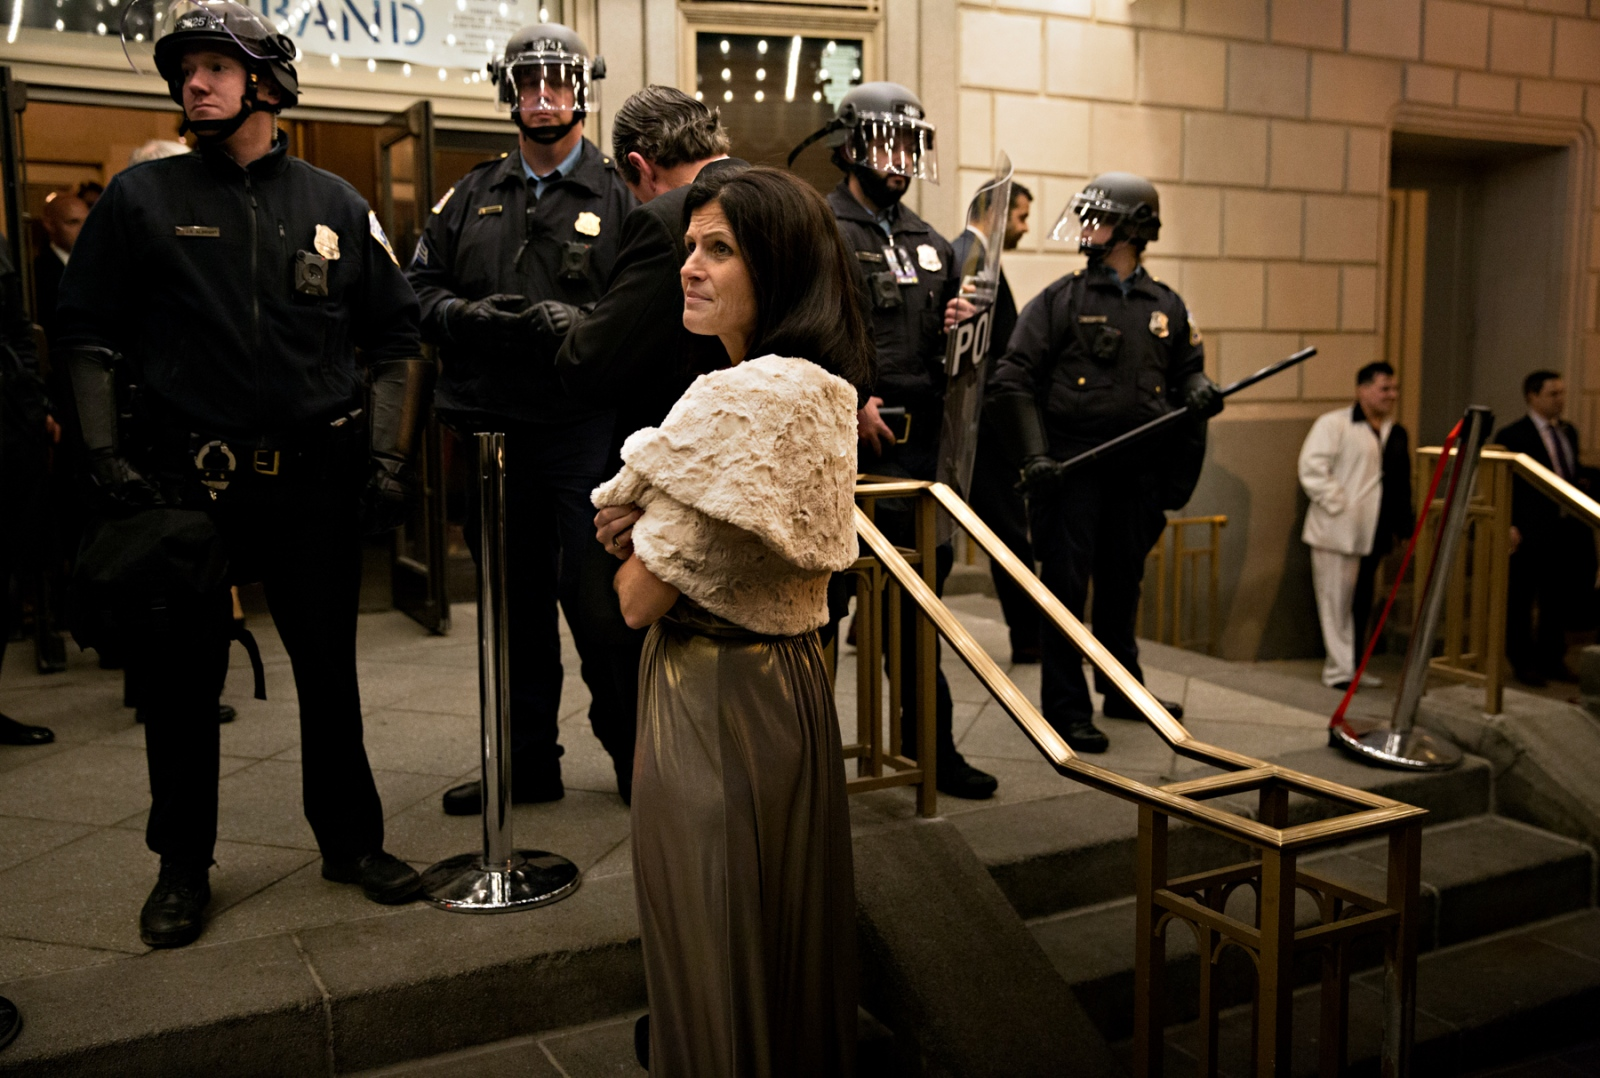 January 19, 2017 - Washington, DC, United States: A woman attending a Ball waits to be allowed inside and beyond the Washington DC police in riot gear.